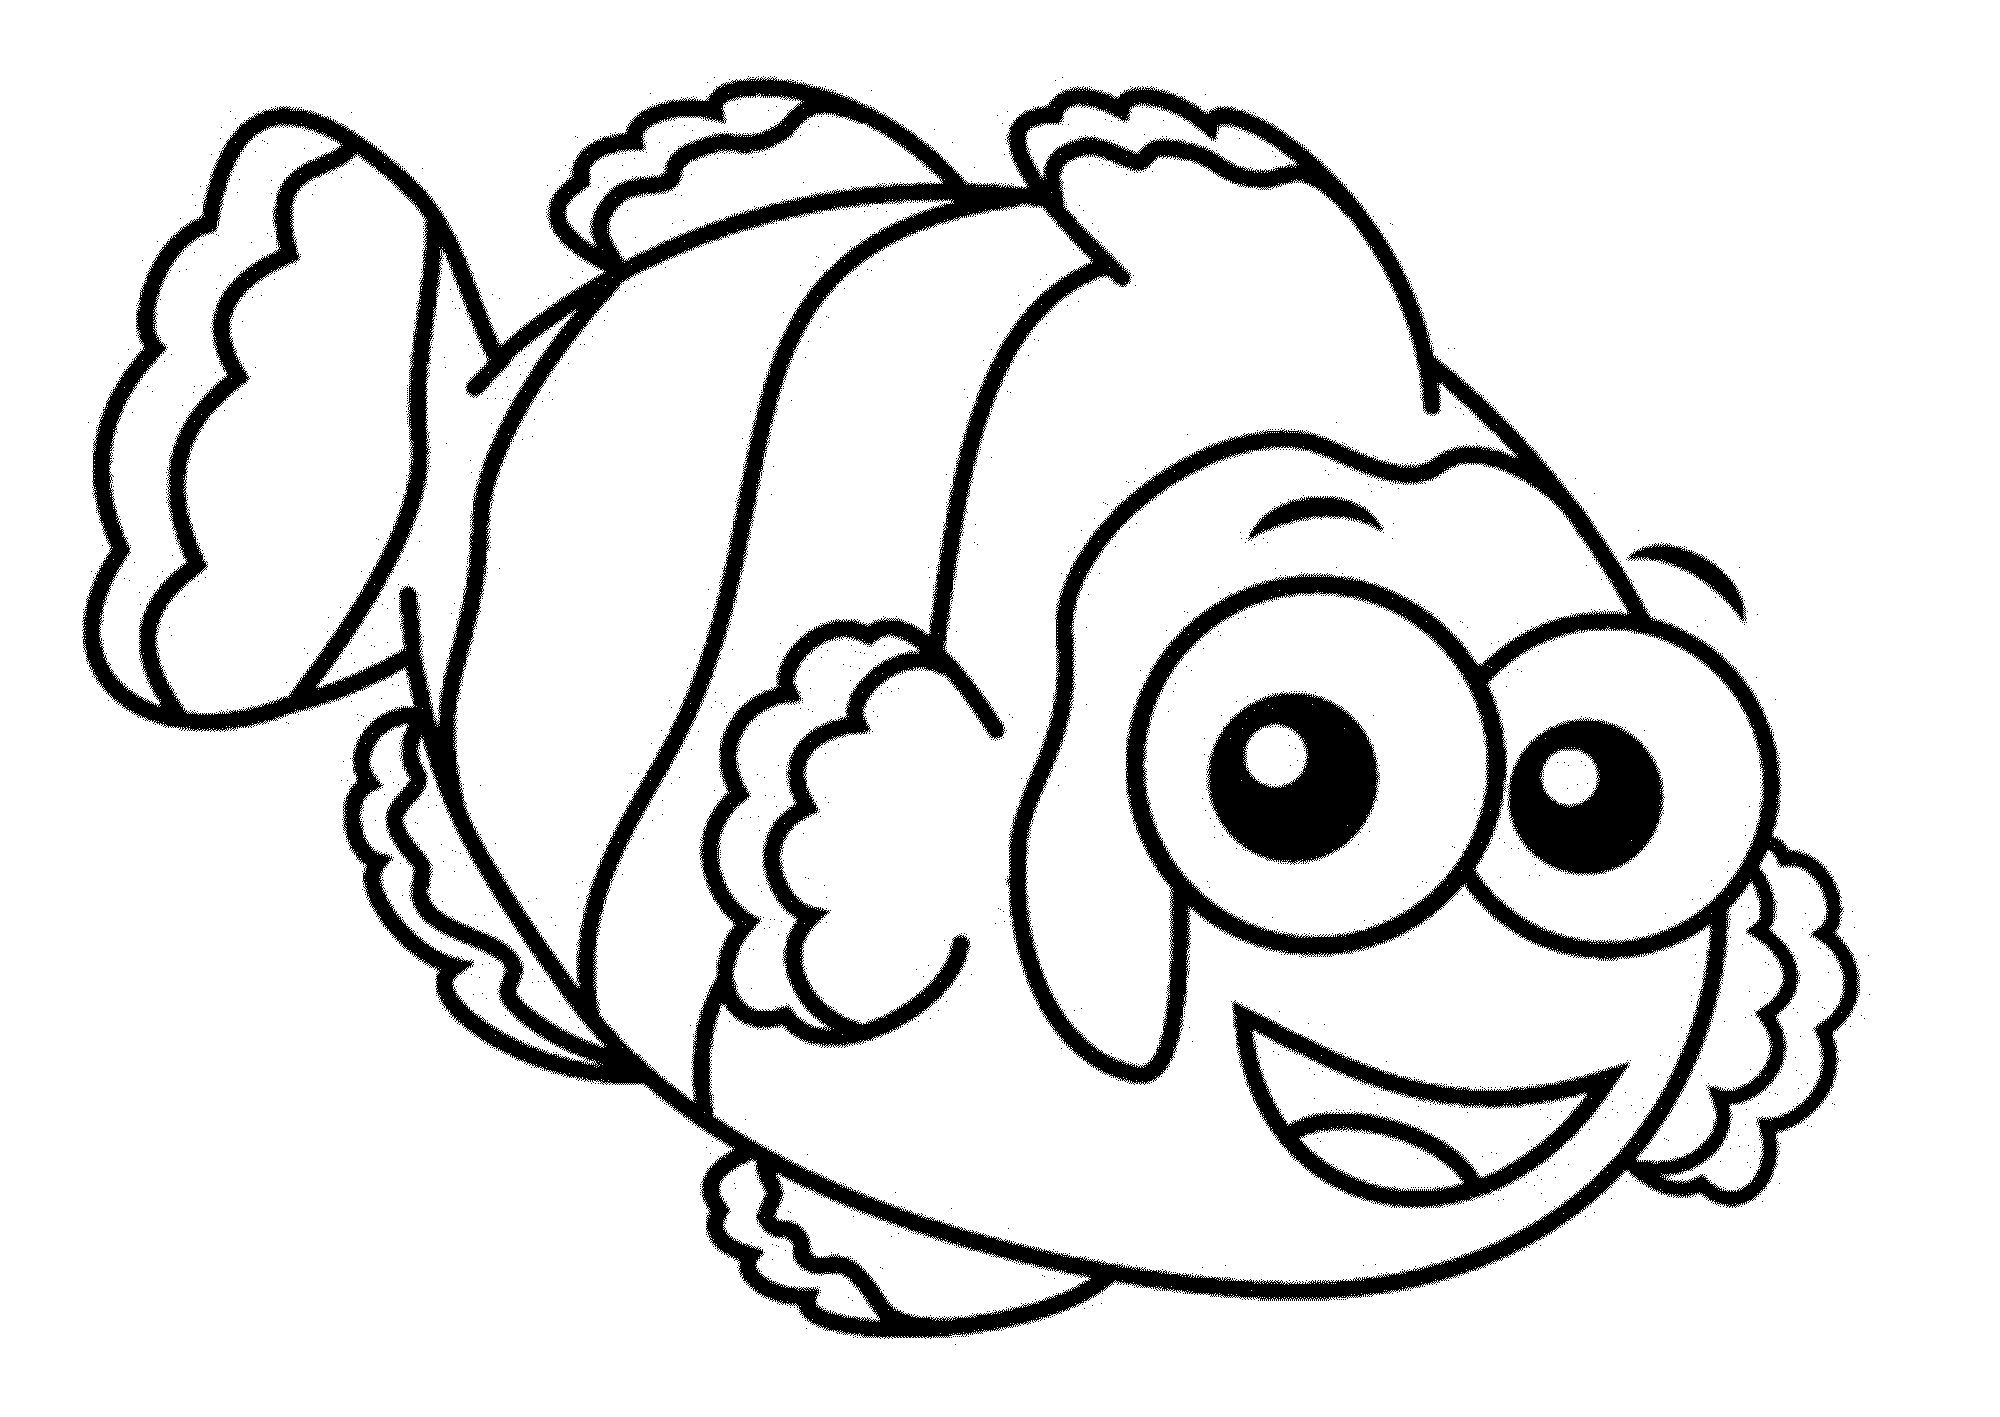 coloring fish pages free fish coloring pages for kids pages coloring fish